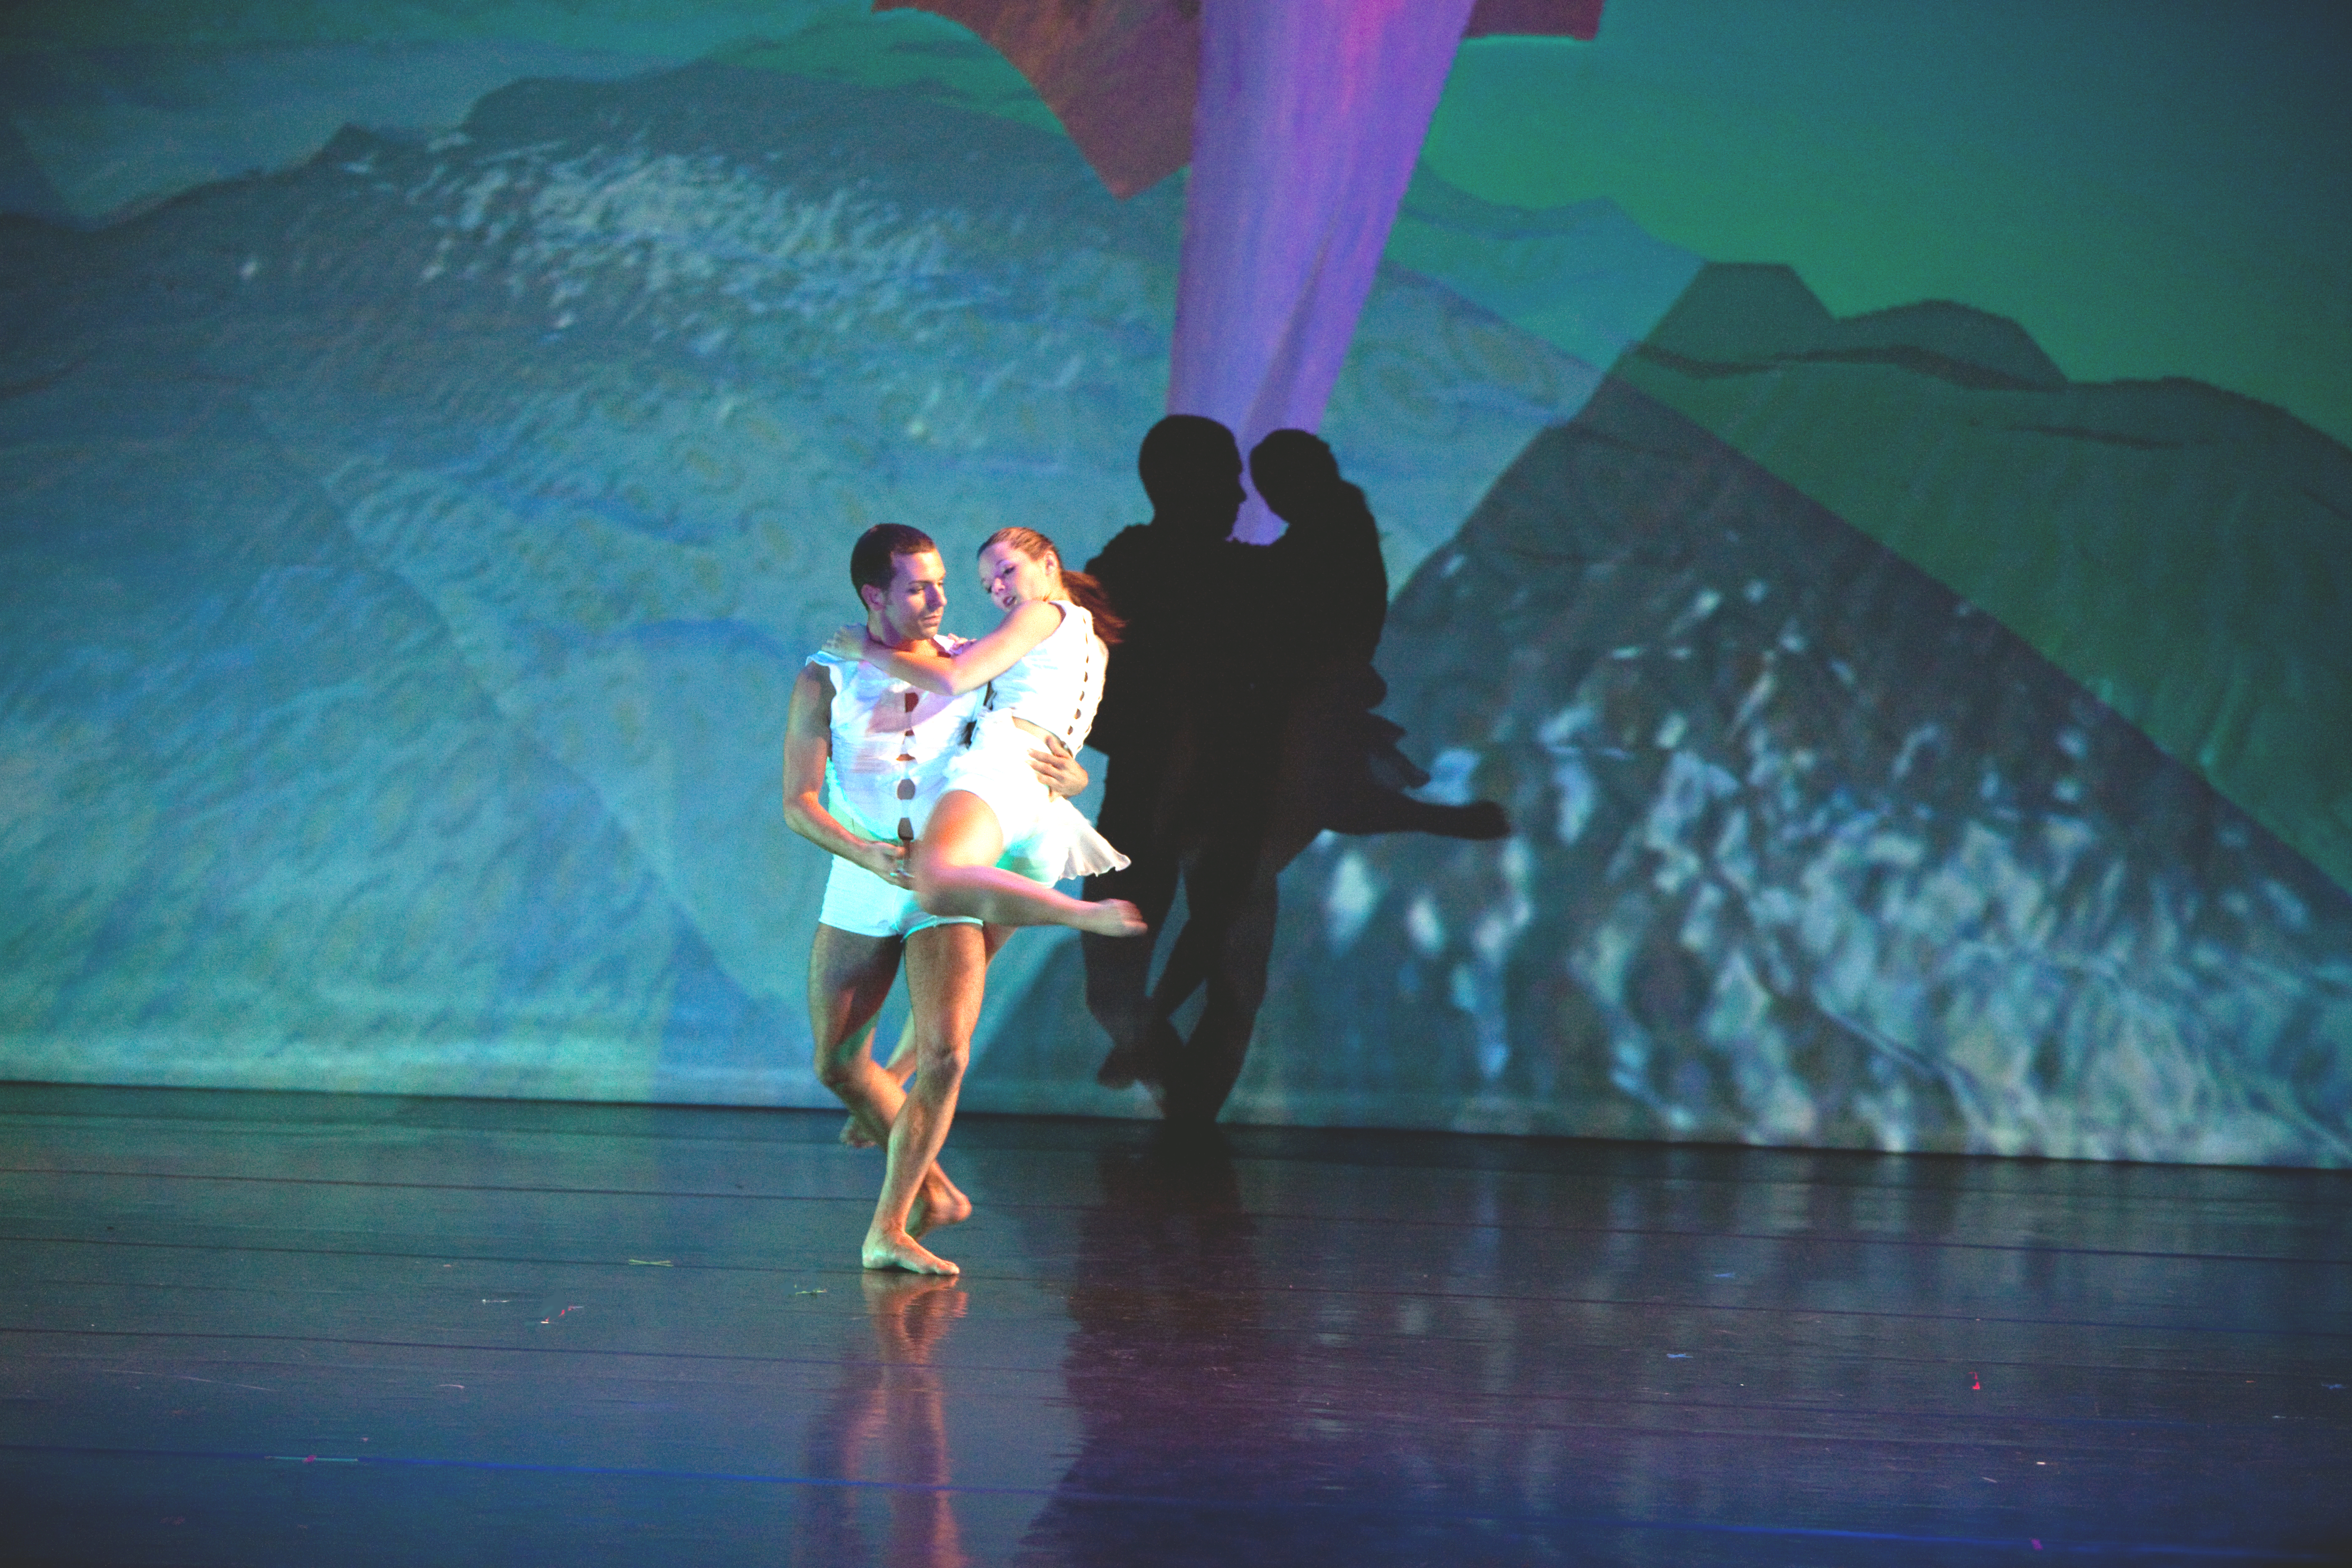 """GW's Department of Theatre and Dance Presents """"Spring DanceWorks,"""" April 15-17 Production Features Internationally Acclaimed Guest Artists, Faculty and Student Choreographers"""